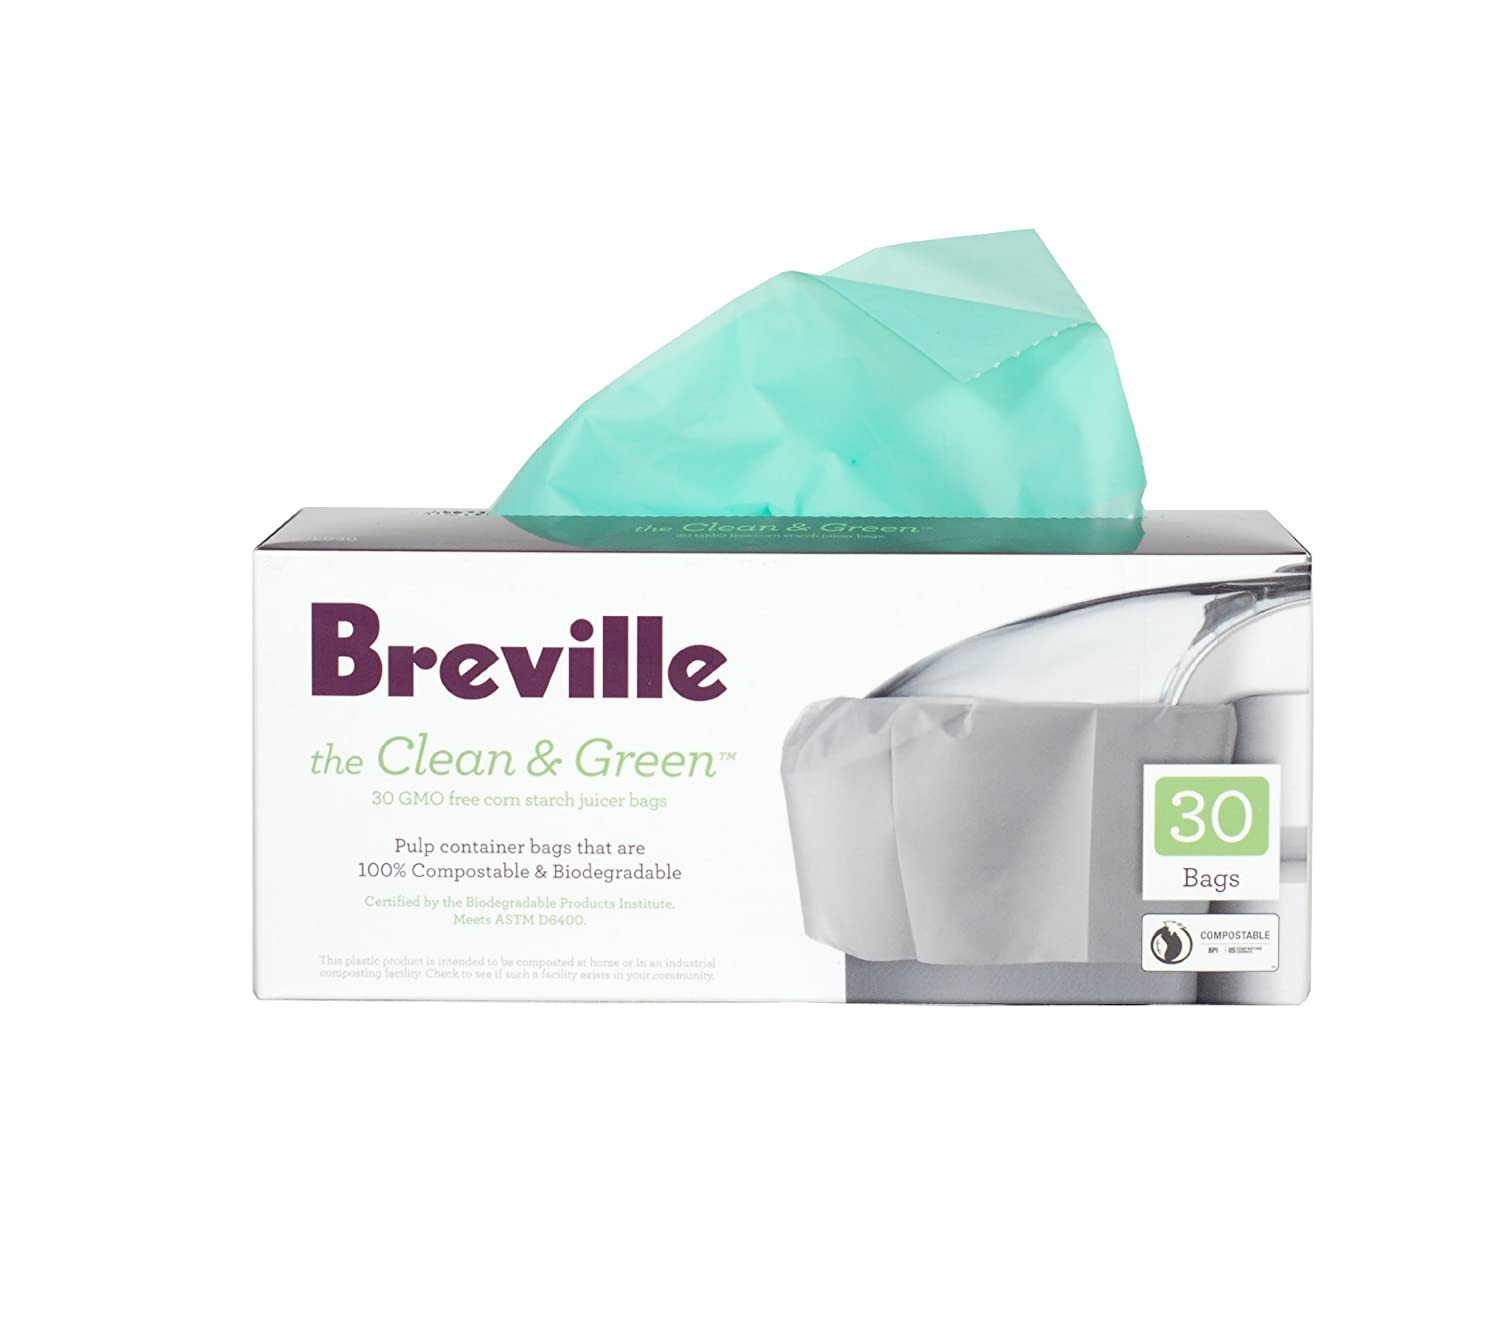 Breville BJE030 Clean and Green Biodegradable Pulp Container Bag for Juicers HWI/Breville USA